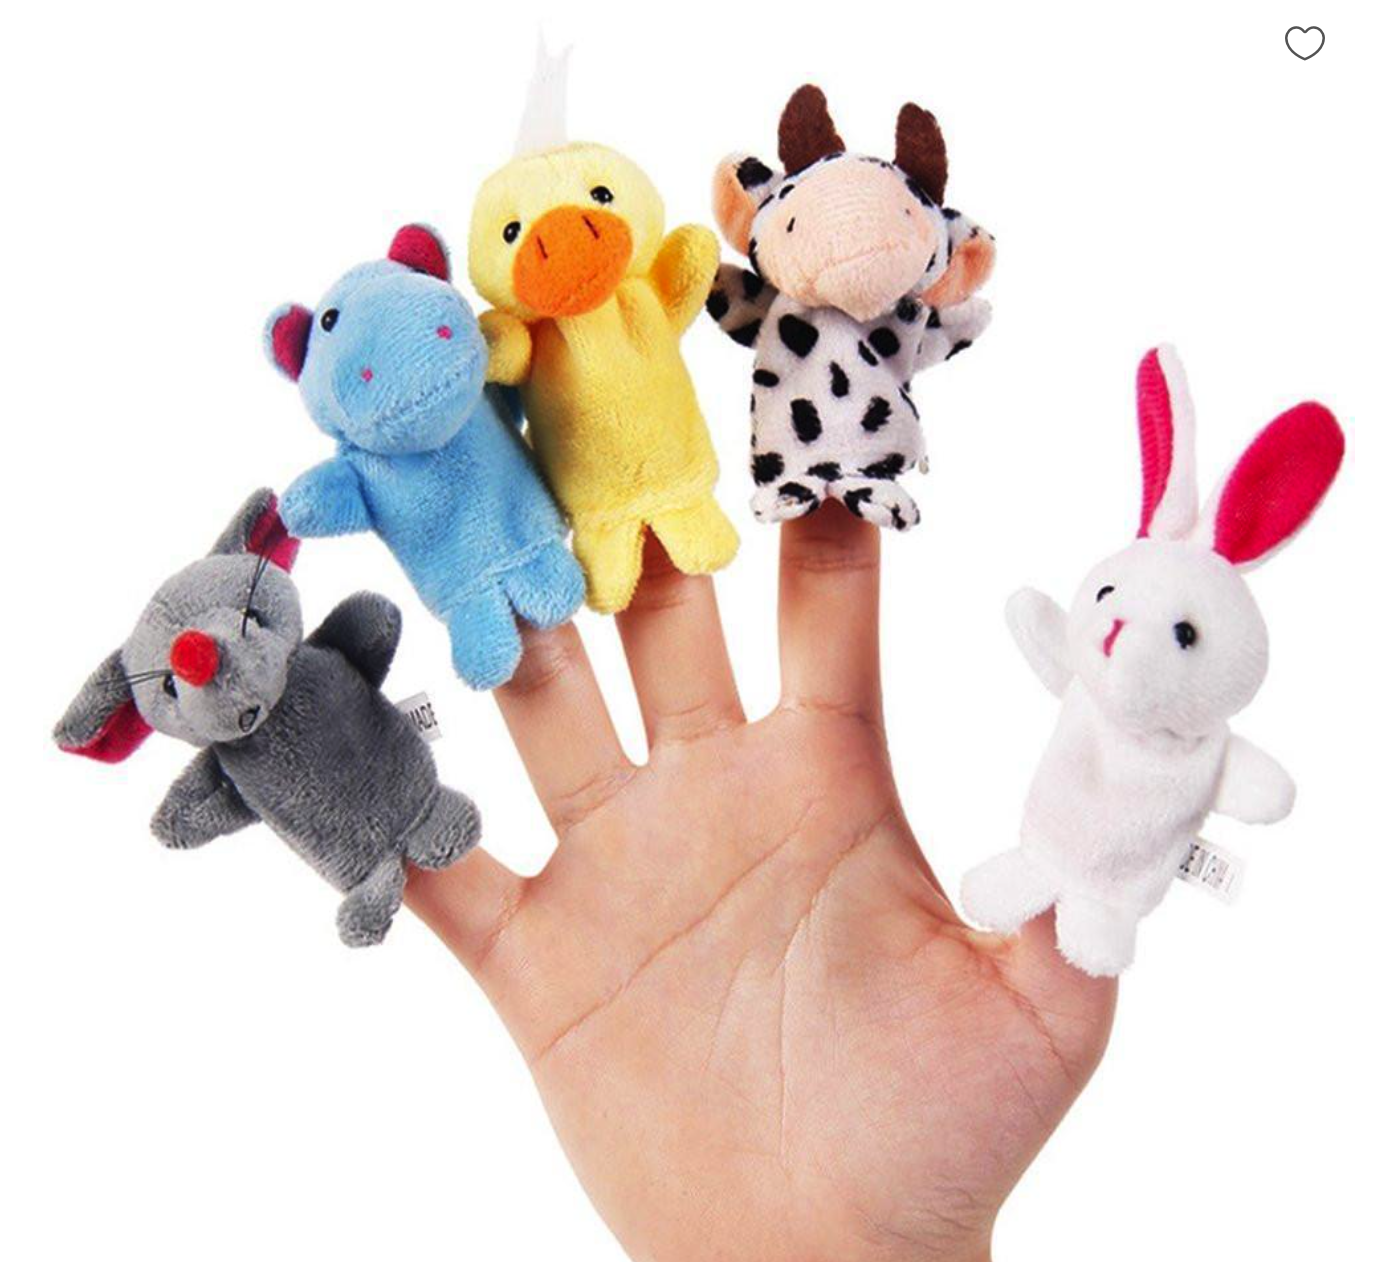 Finger puppet animals | The Quality Choice | Influencer Partnership Programs